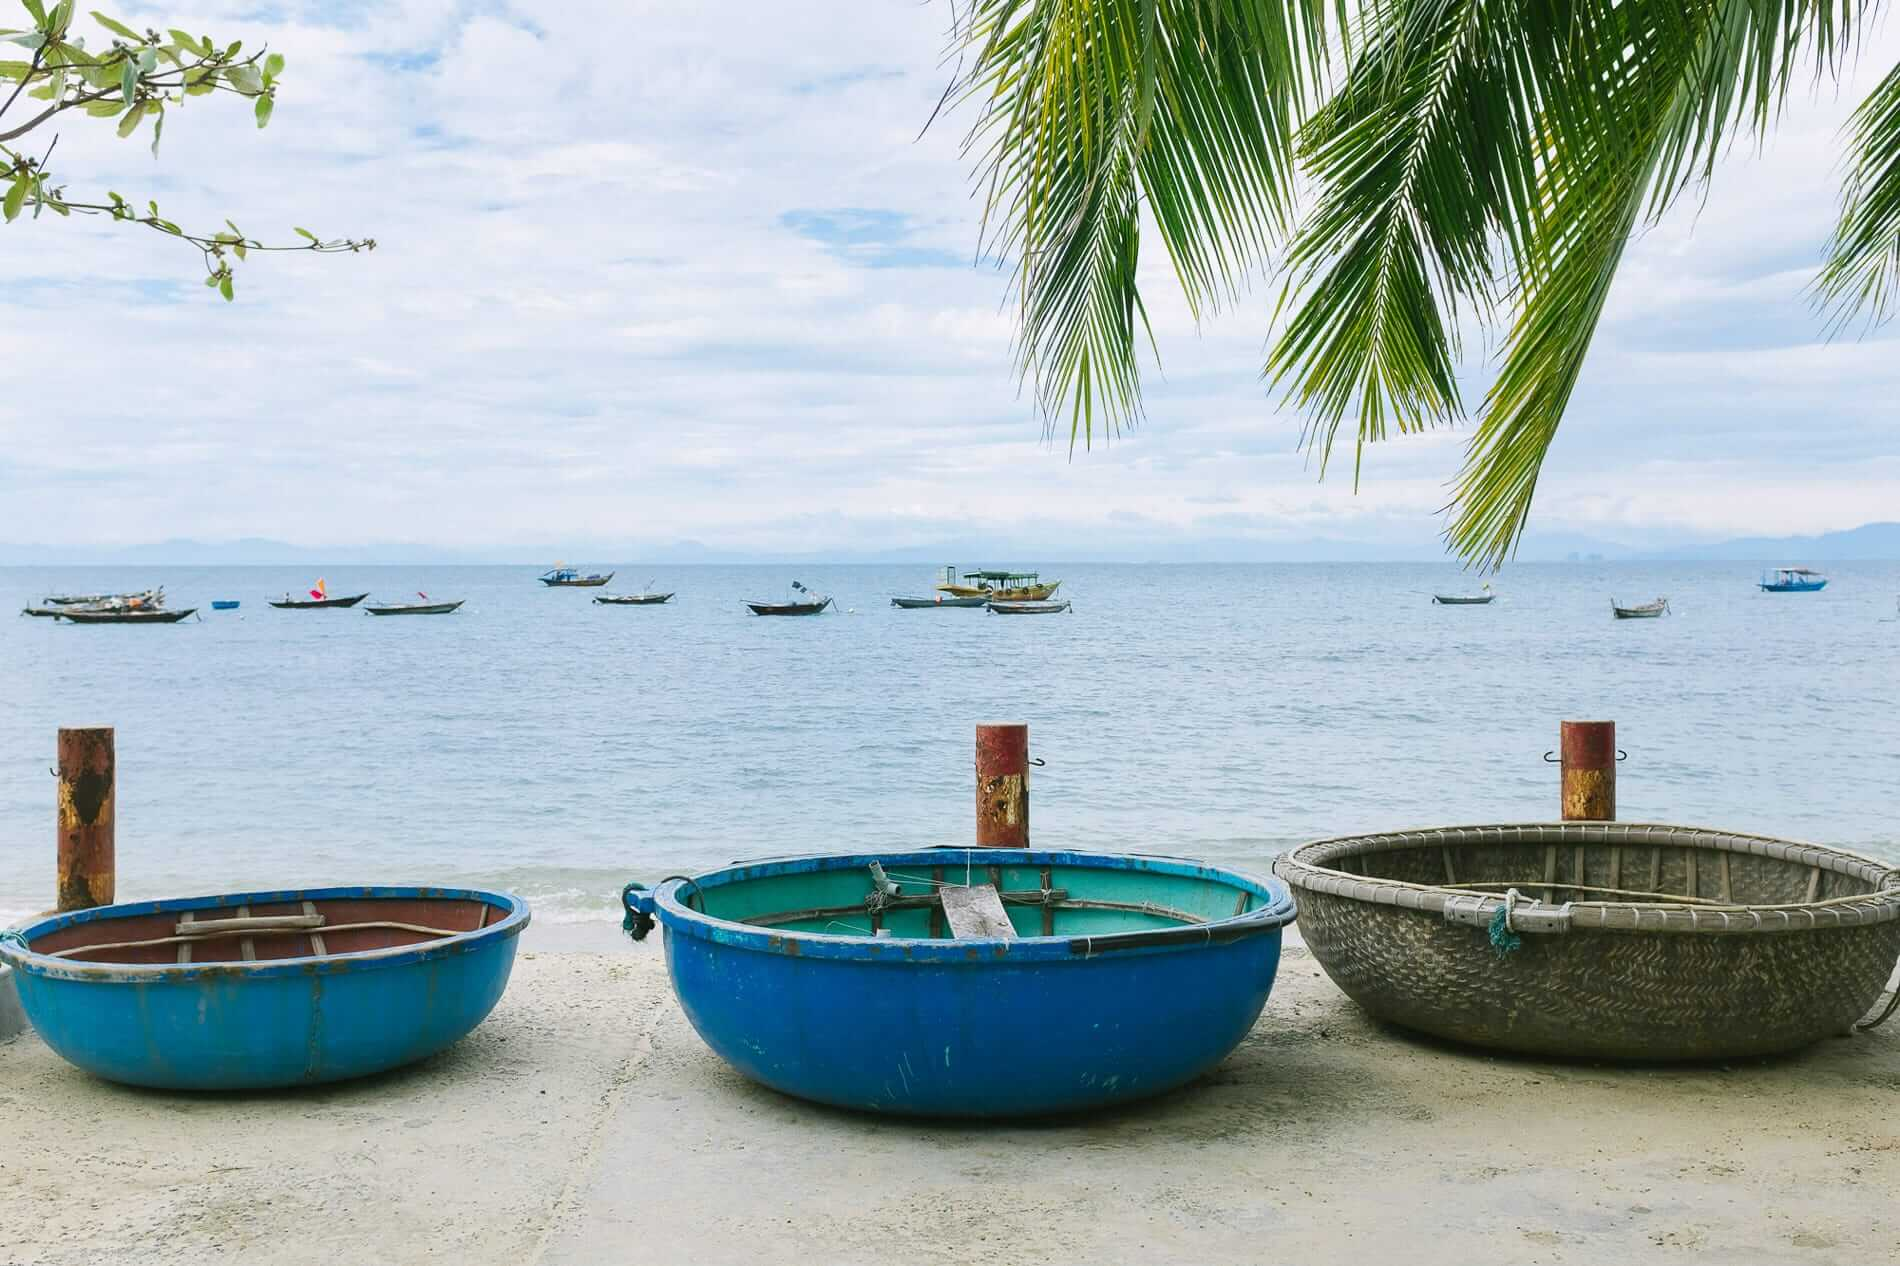 Conical boats on a calm day at Cham Islands